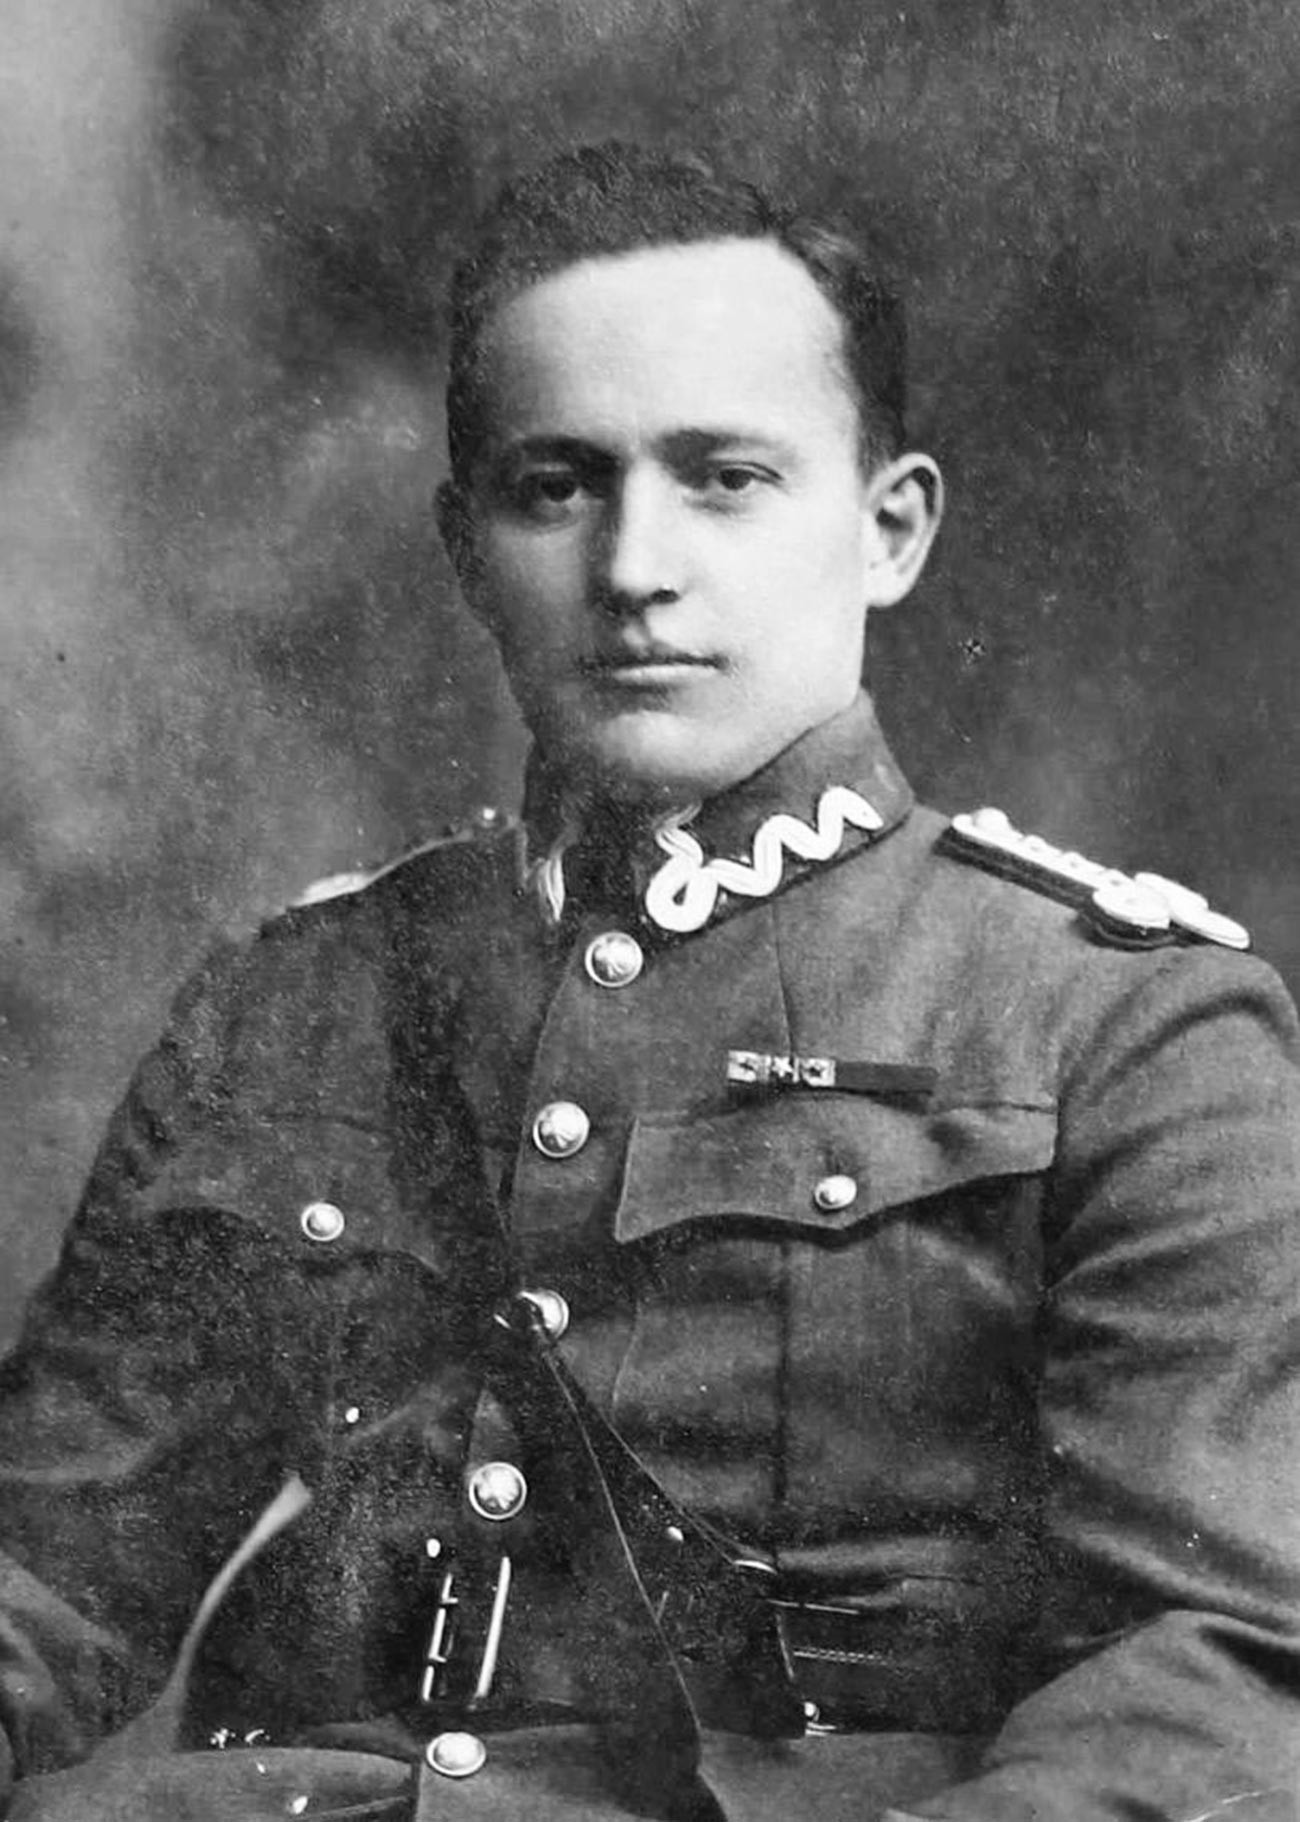 Cooper in Lwów during the time of the Kościuszko squadron.